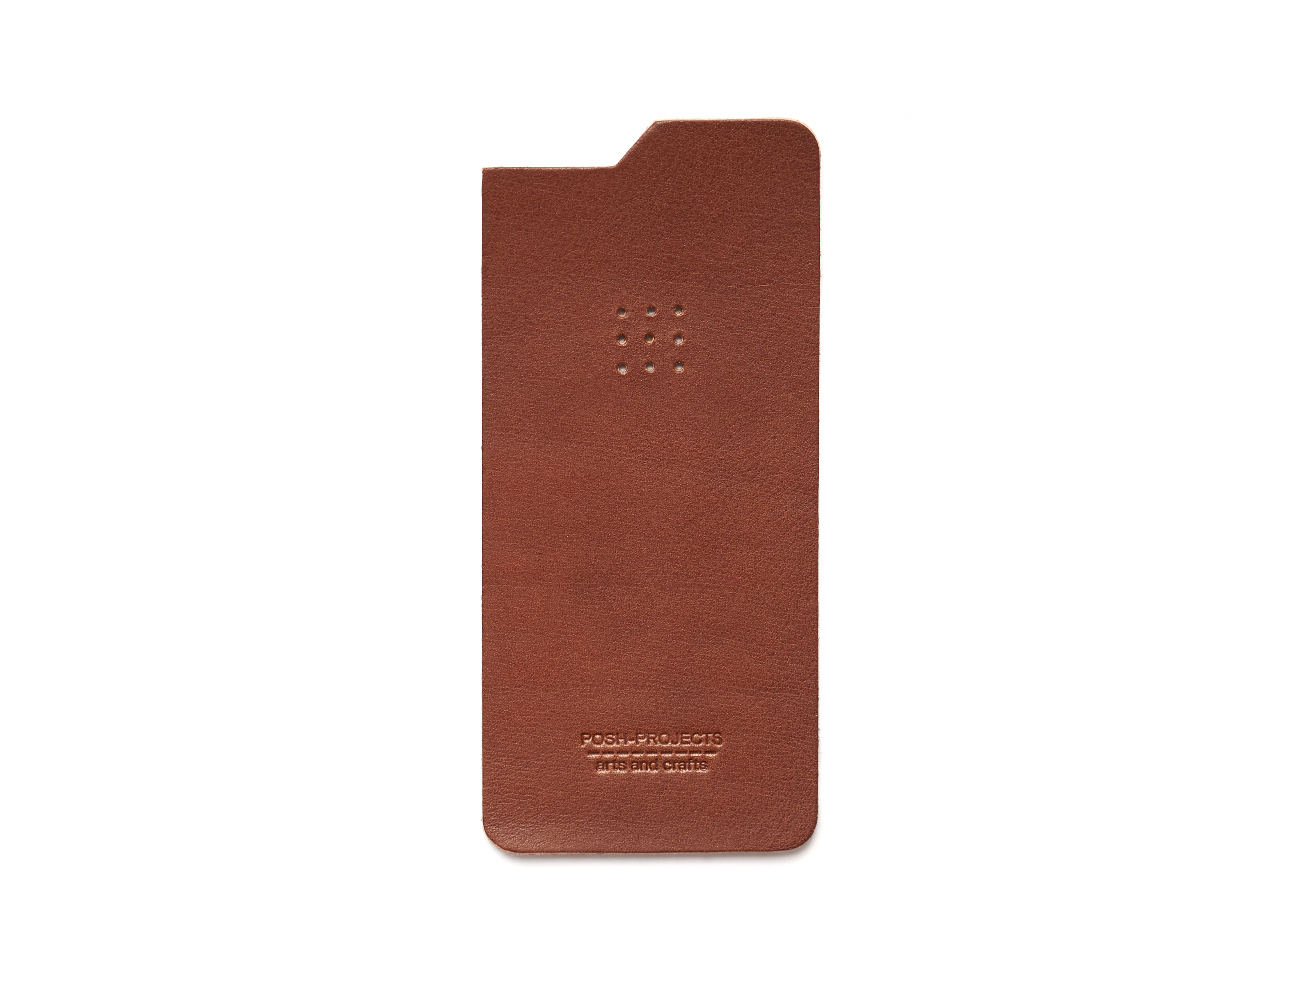 504 iPhone Leather Skin by Posh Projects